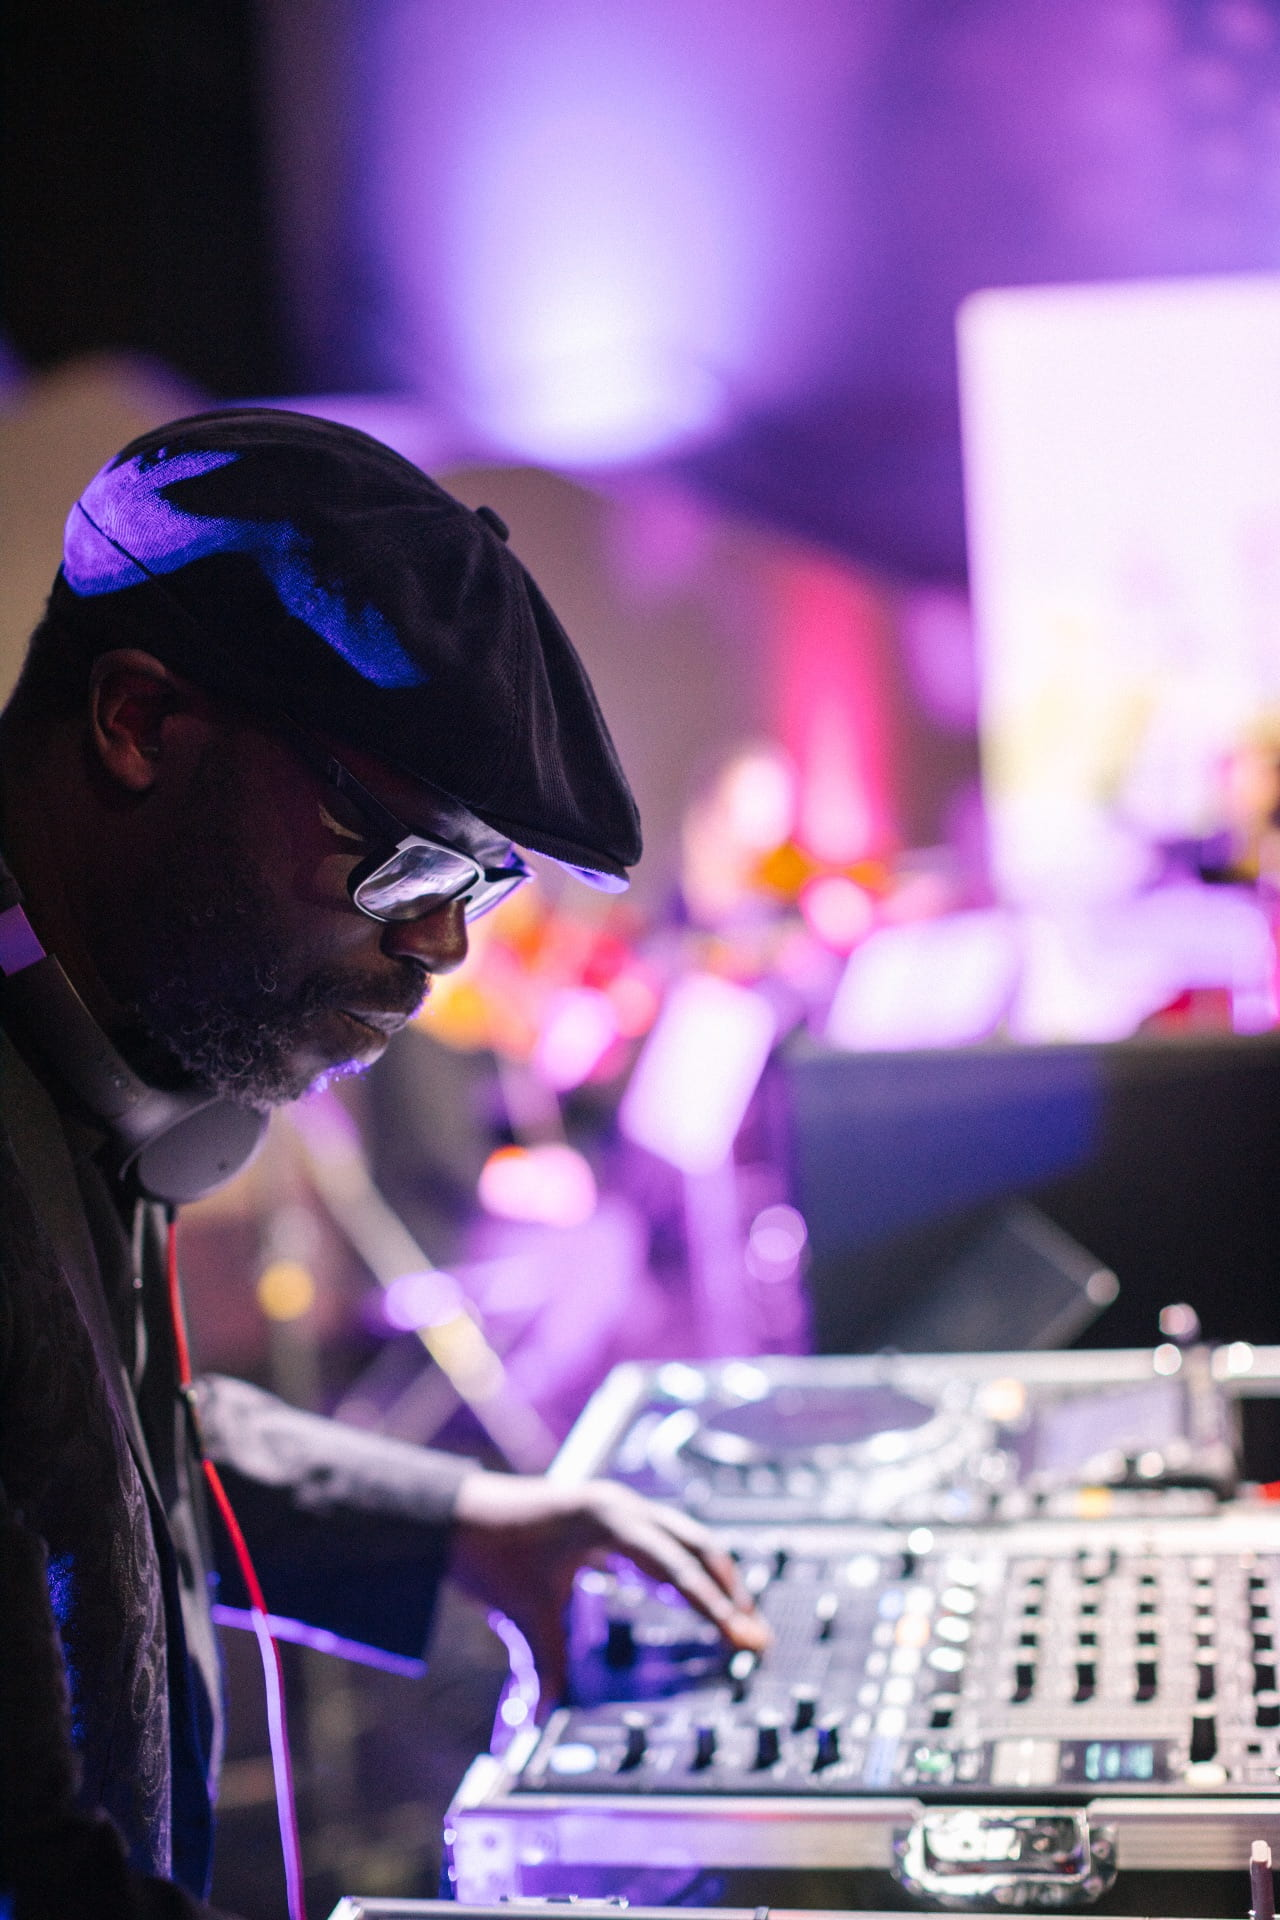 image of Peter adjure playing music from DJ deck with purple lighting around him